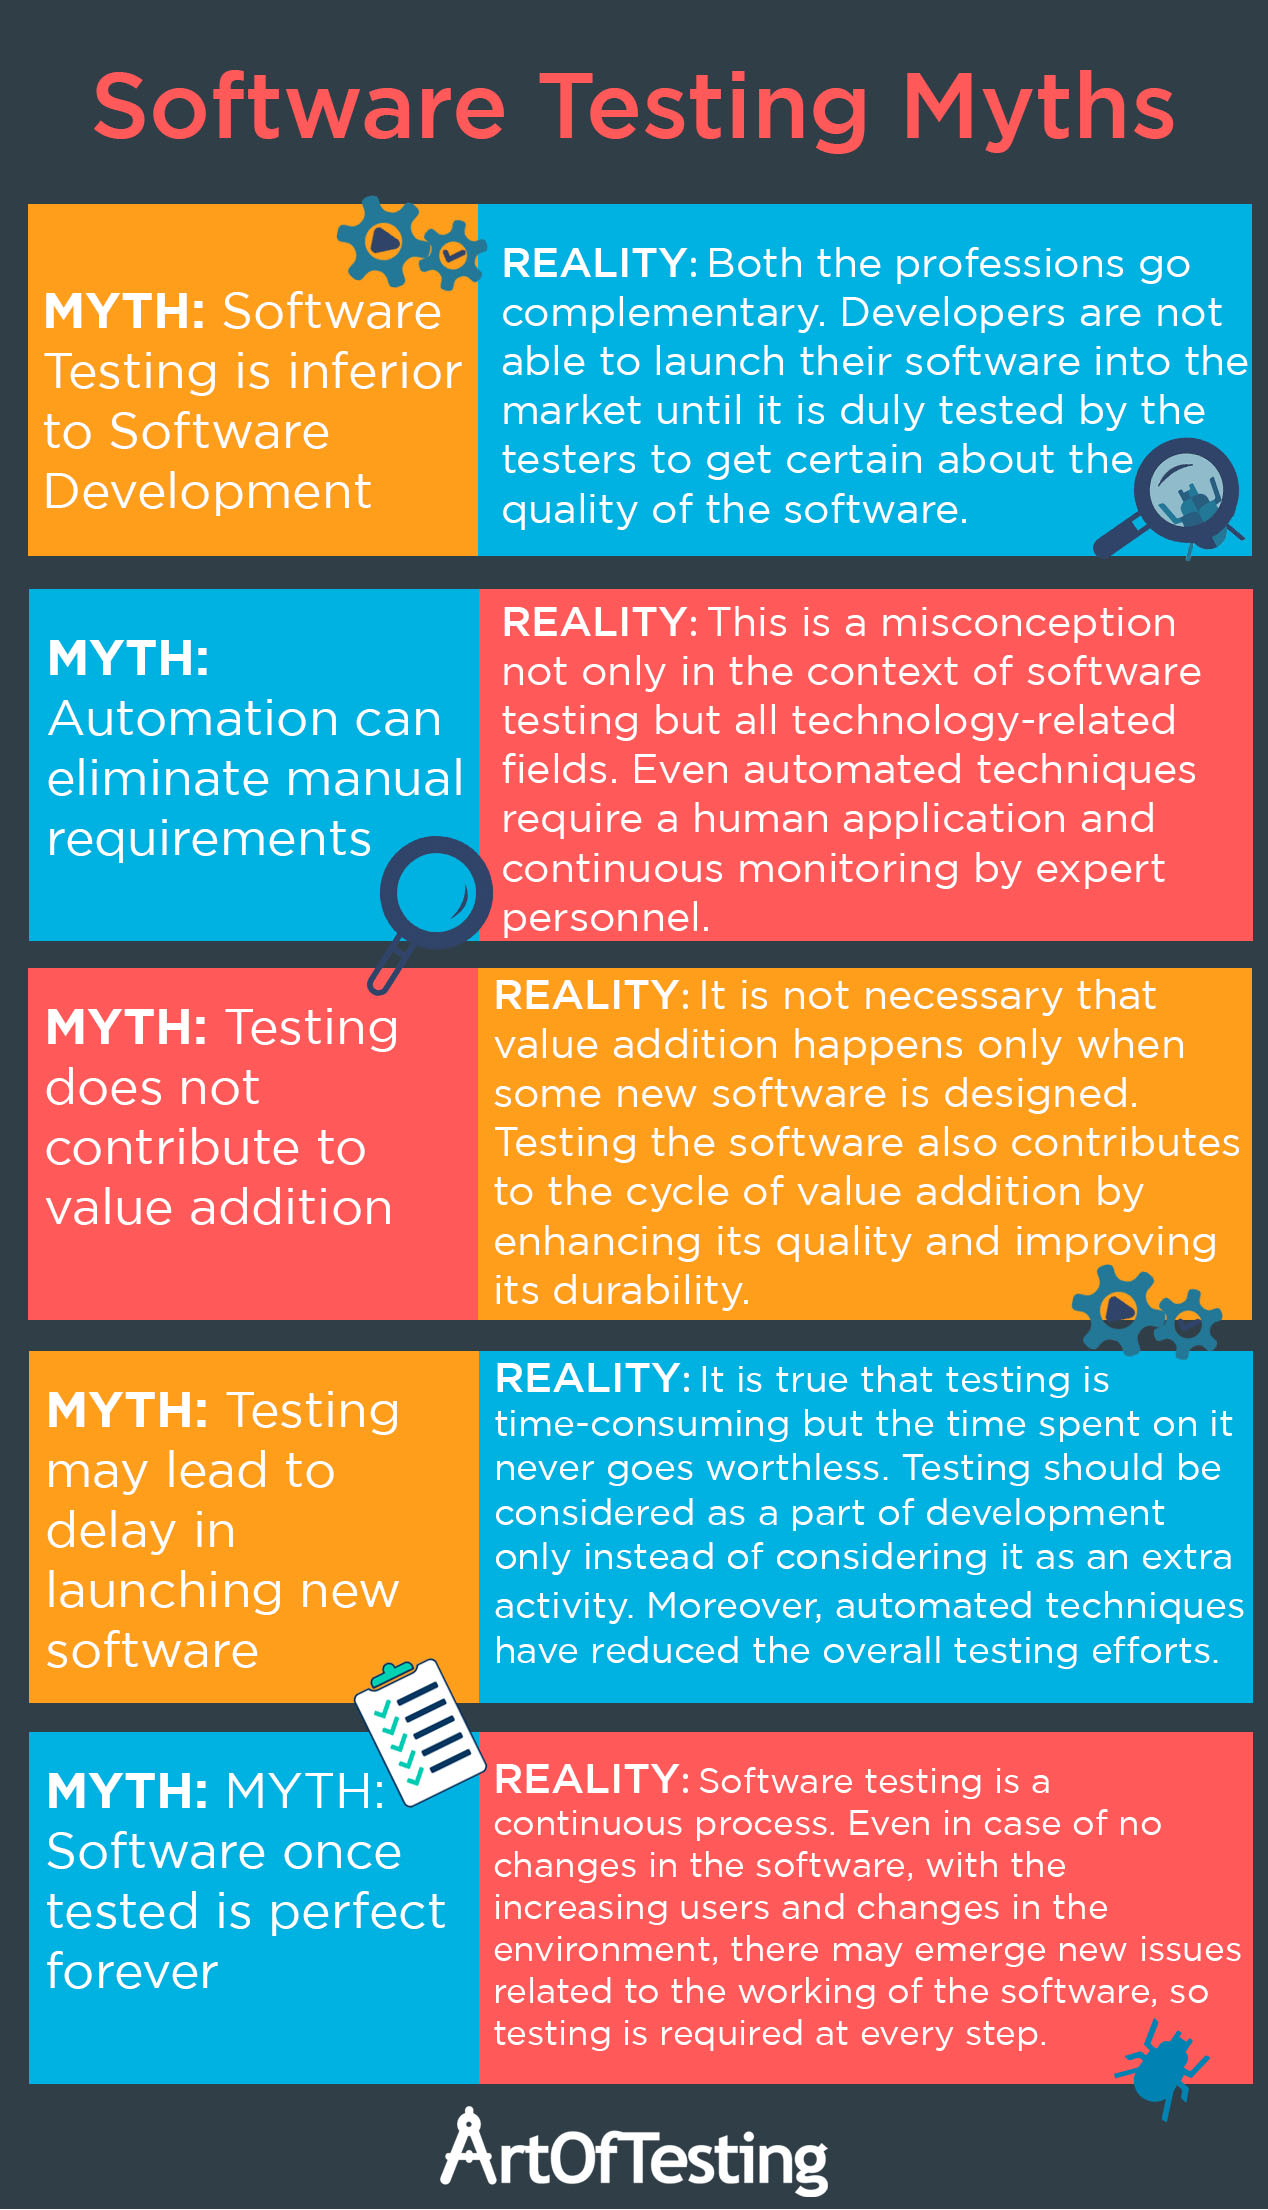 Software Testing Myths infographic